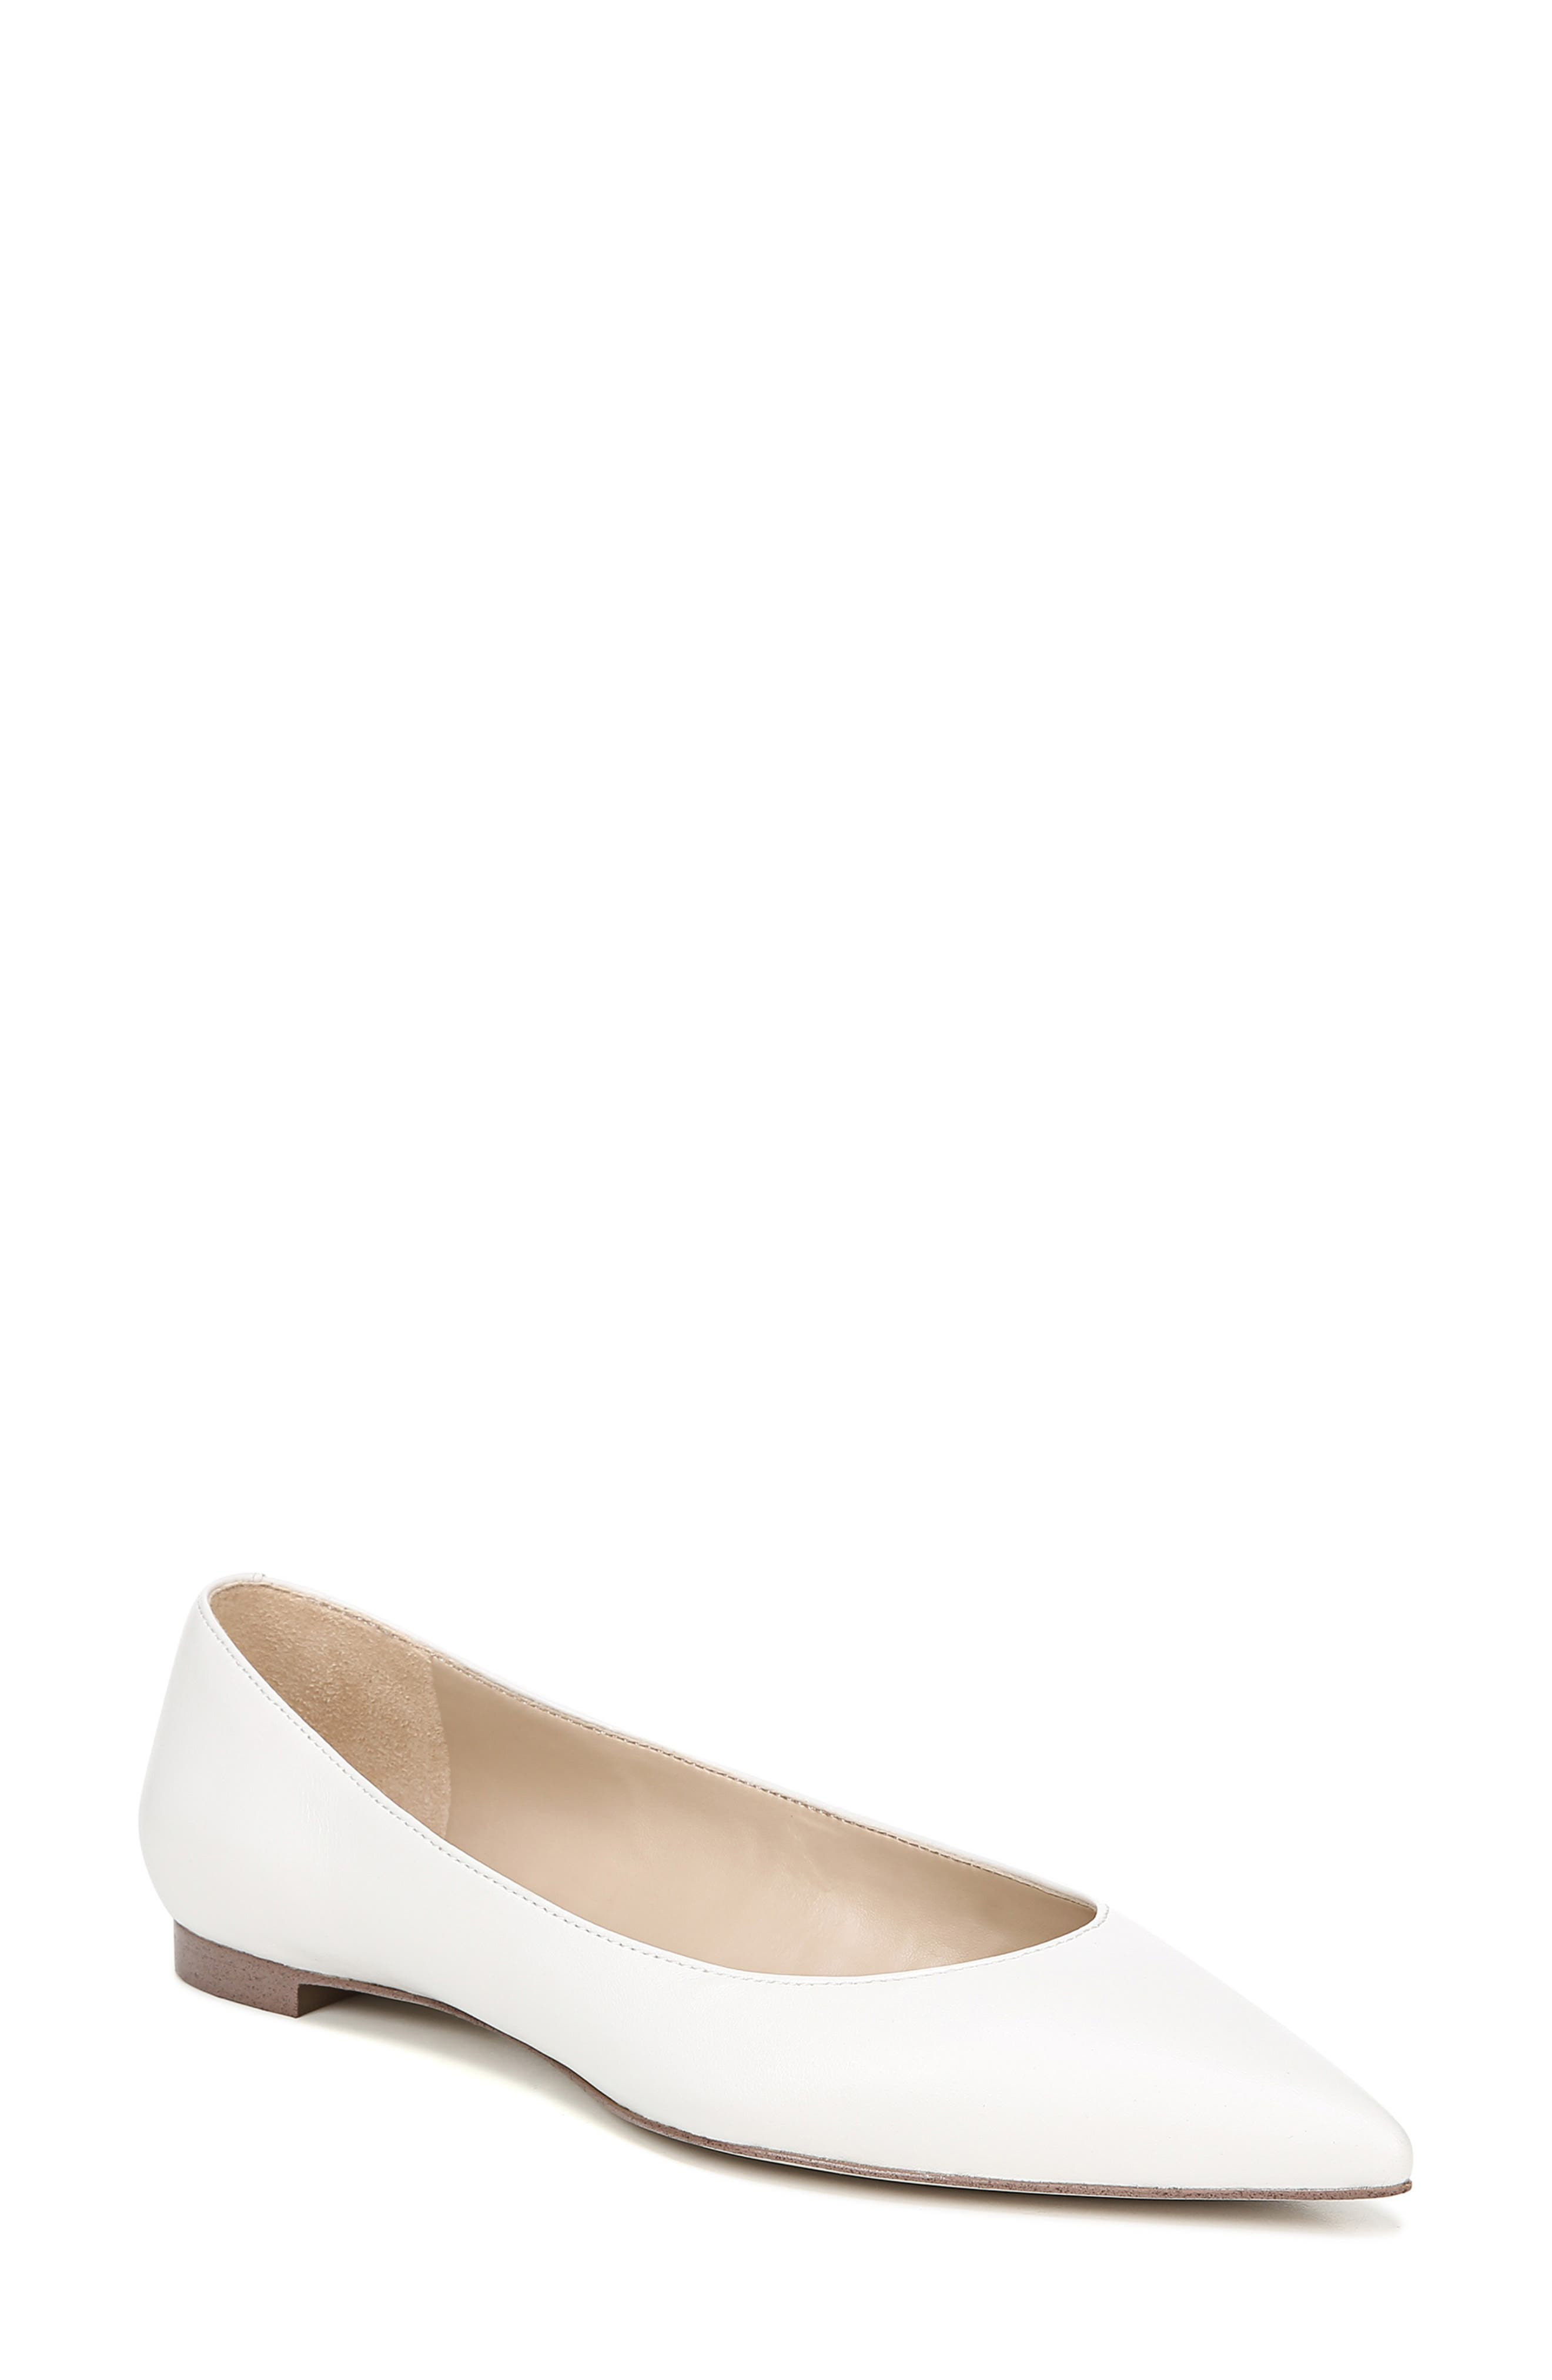 SAM EDELMAN, Sally Flat, Main thumbnail 1, color, BRIGHT WHITE NAPPA LEATHER